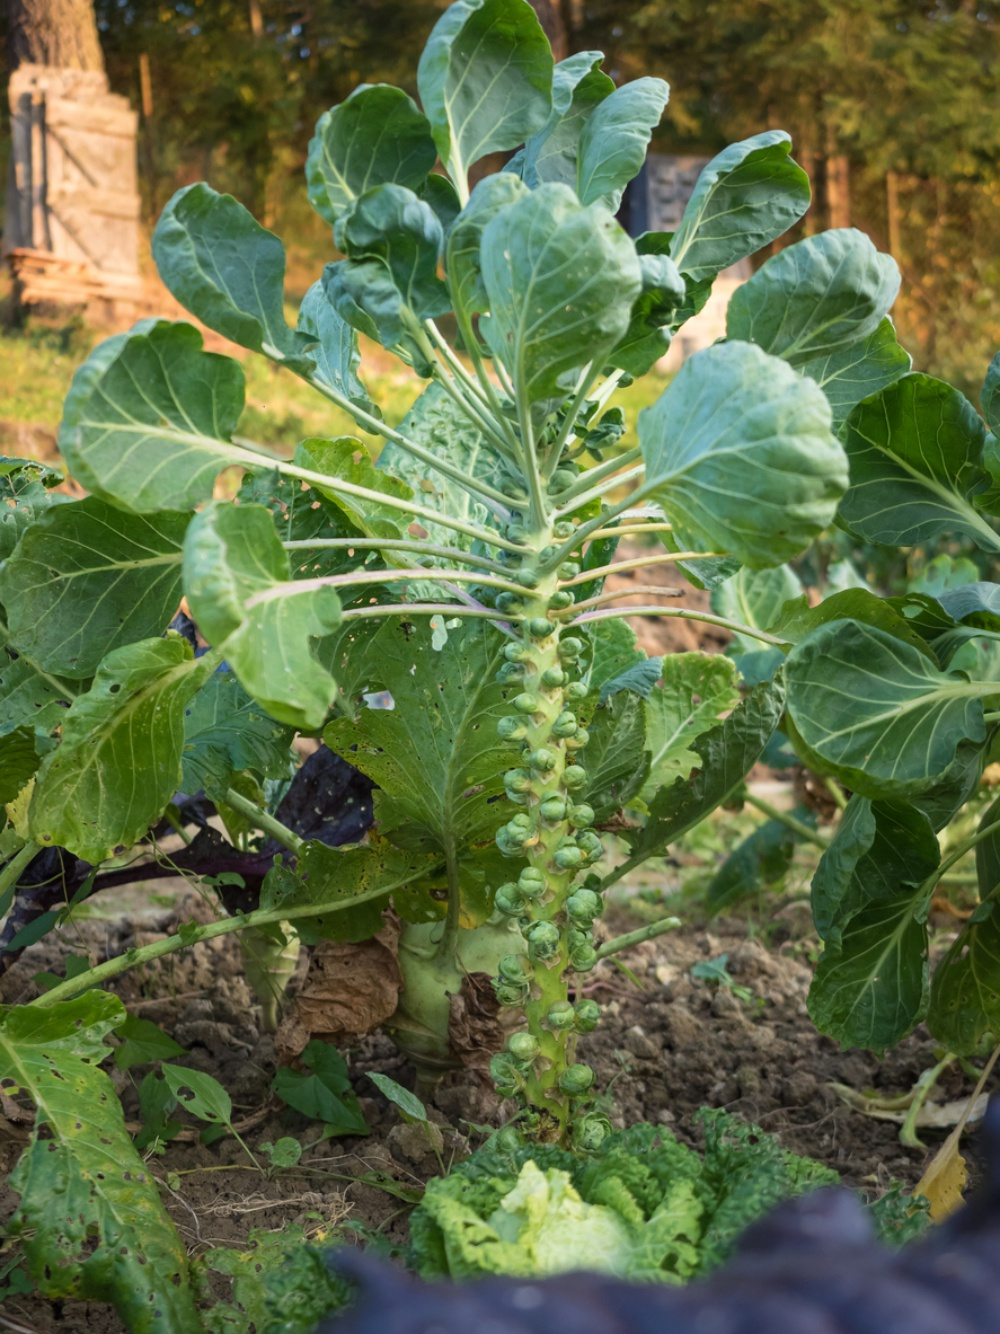 Brussels sprout in the garden